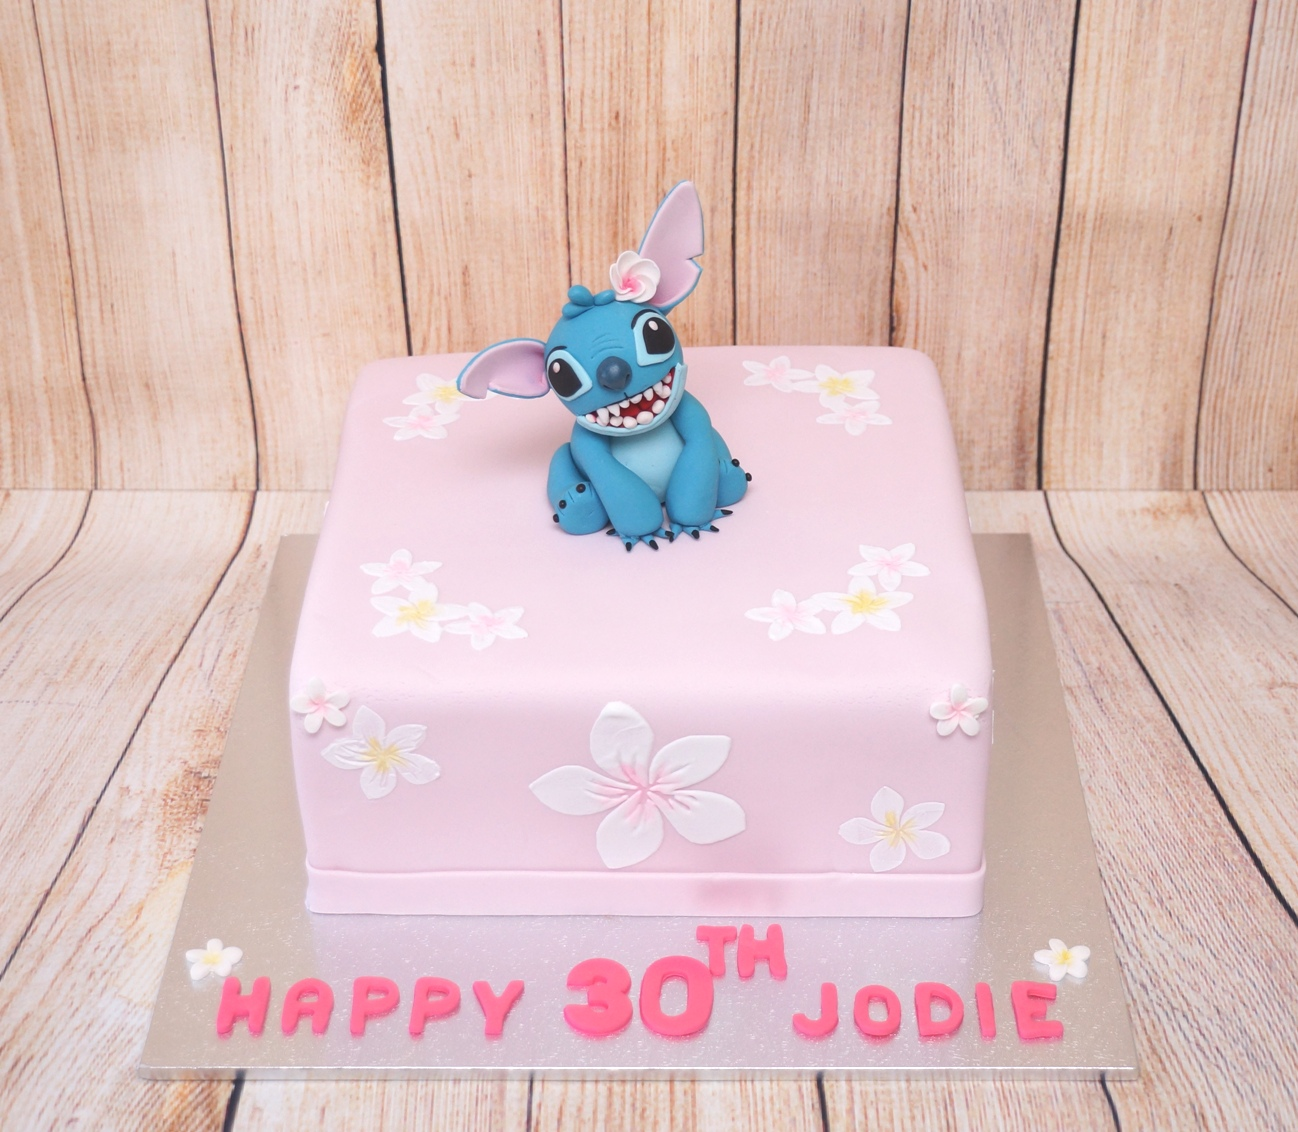 Pink cake with frangipanis and Stitch 2.